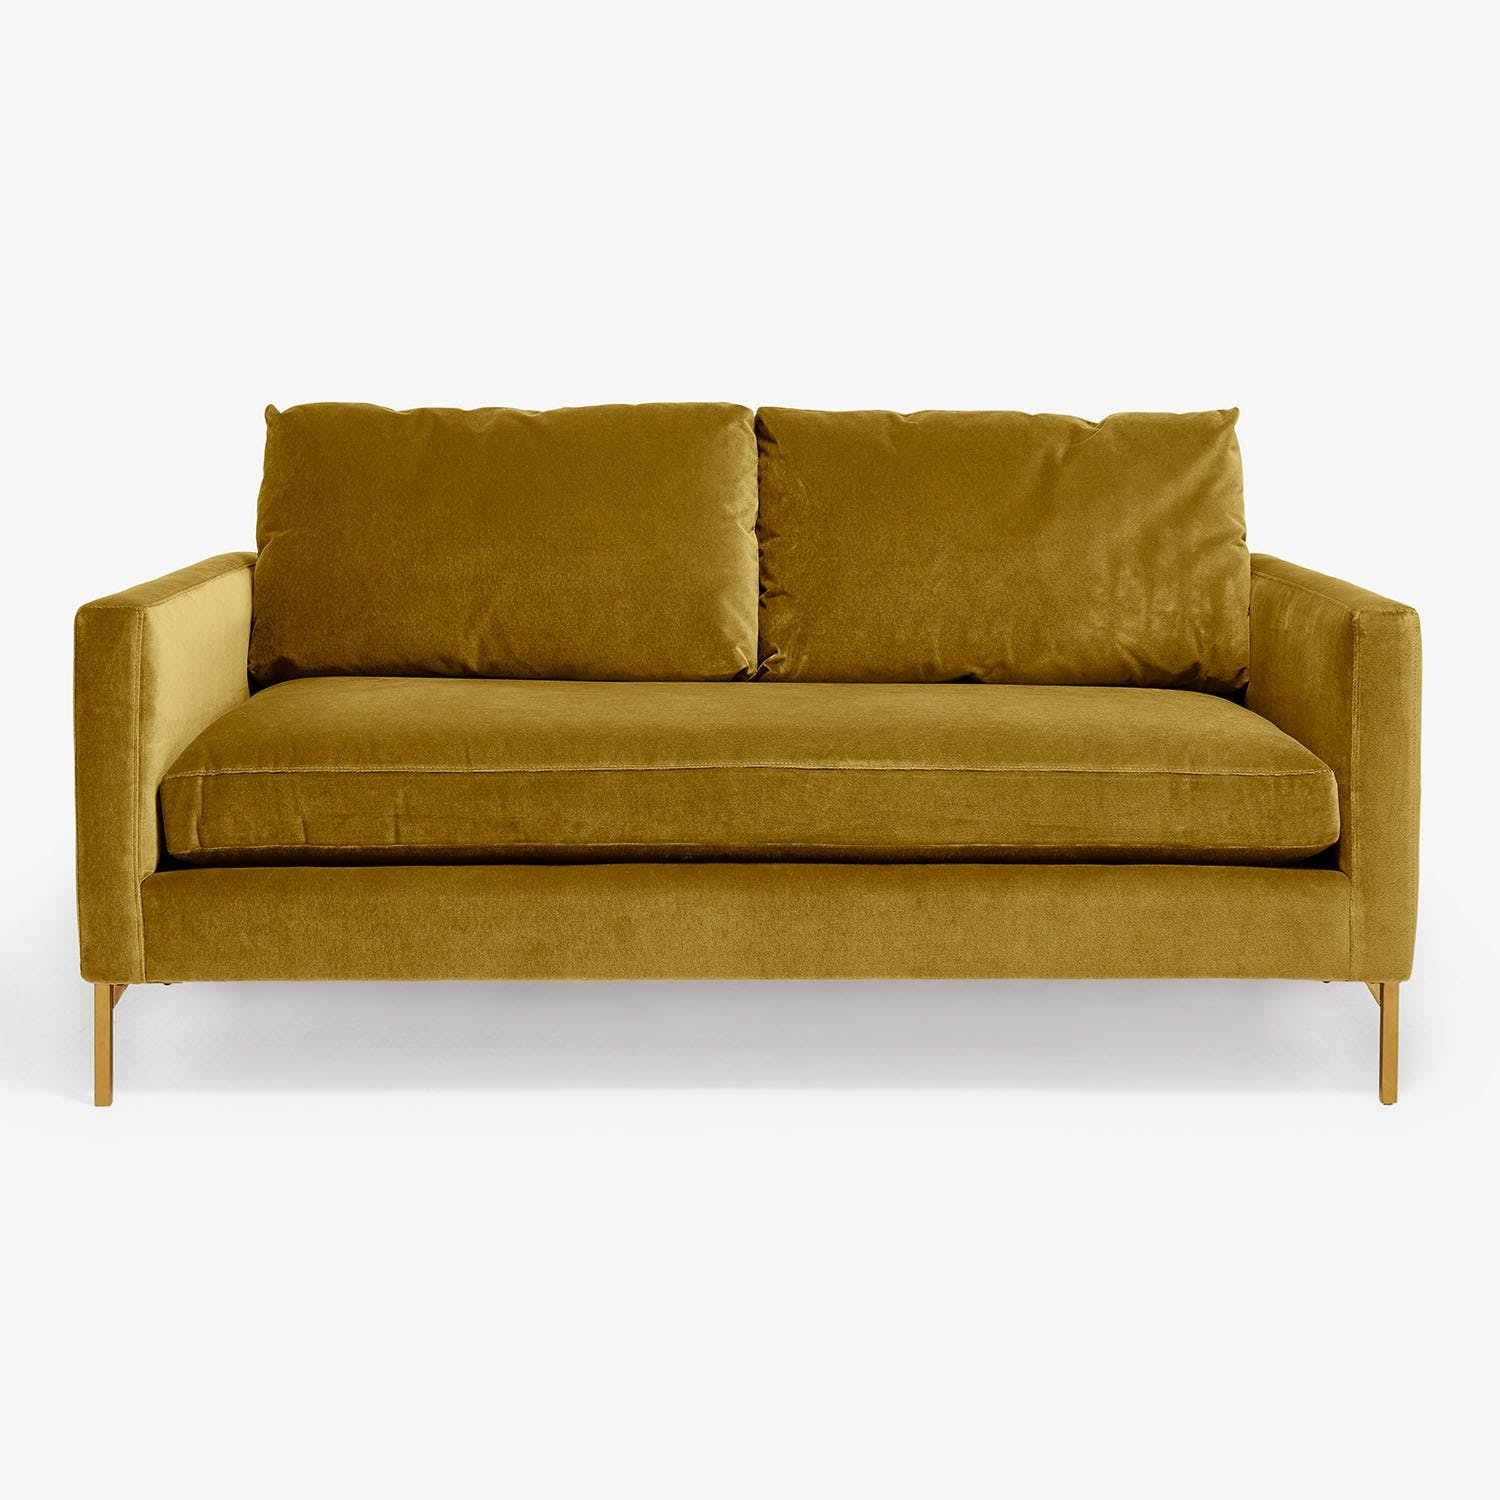 Product Image - Soho Apartment Brass Leg Sofa